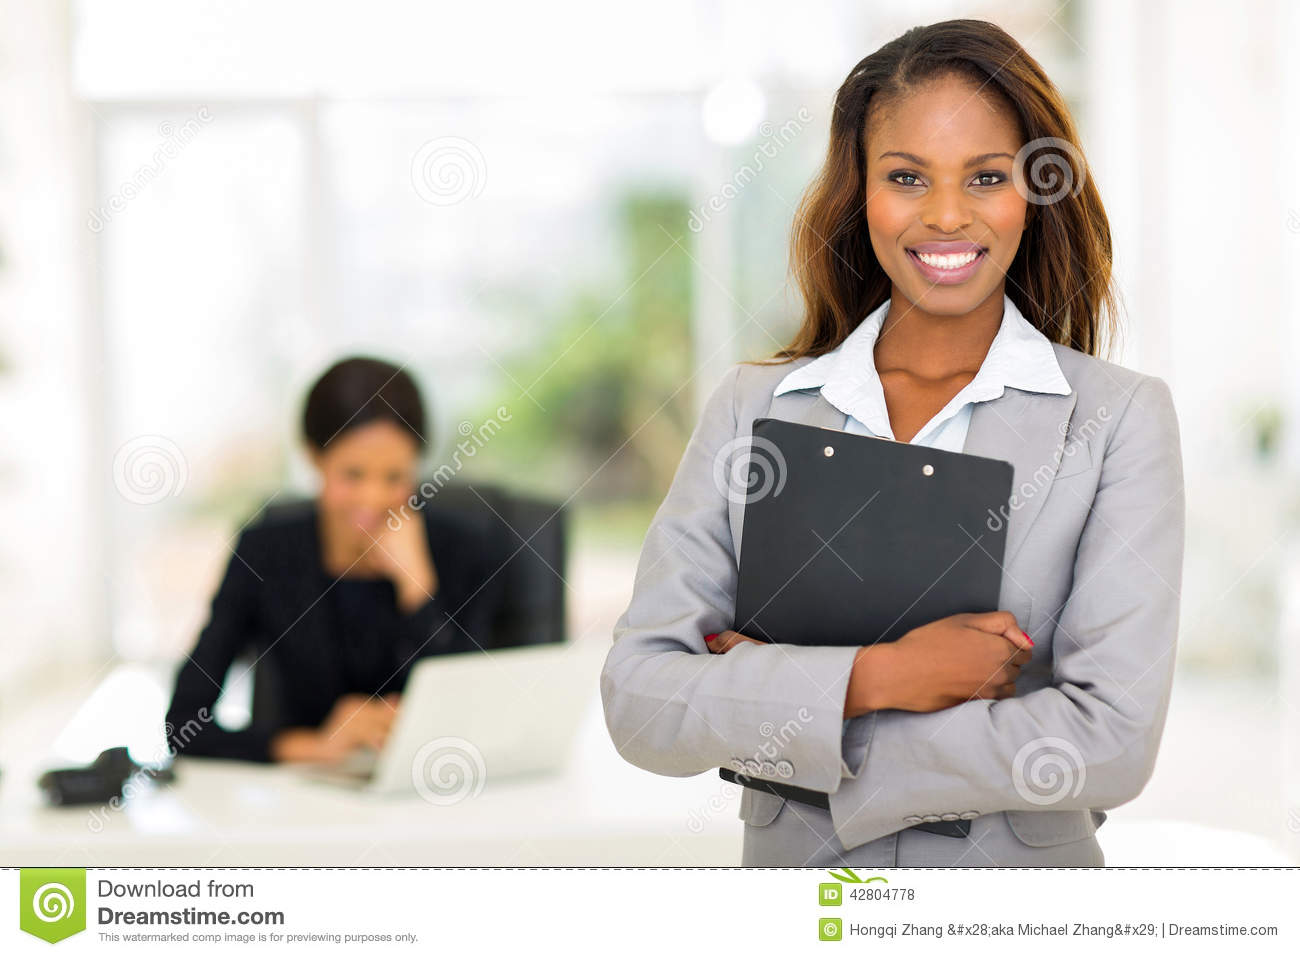 black-business-woman-holding-clipboard-colleague-background-42804778.jpg